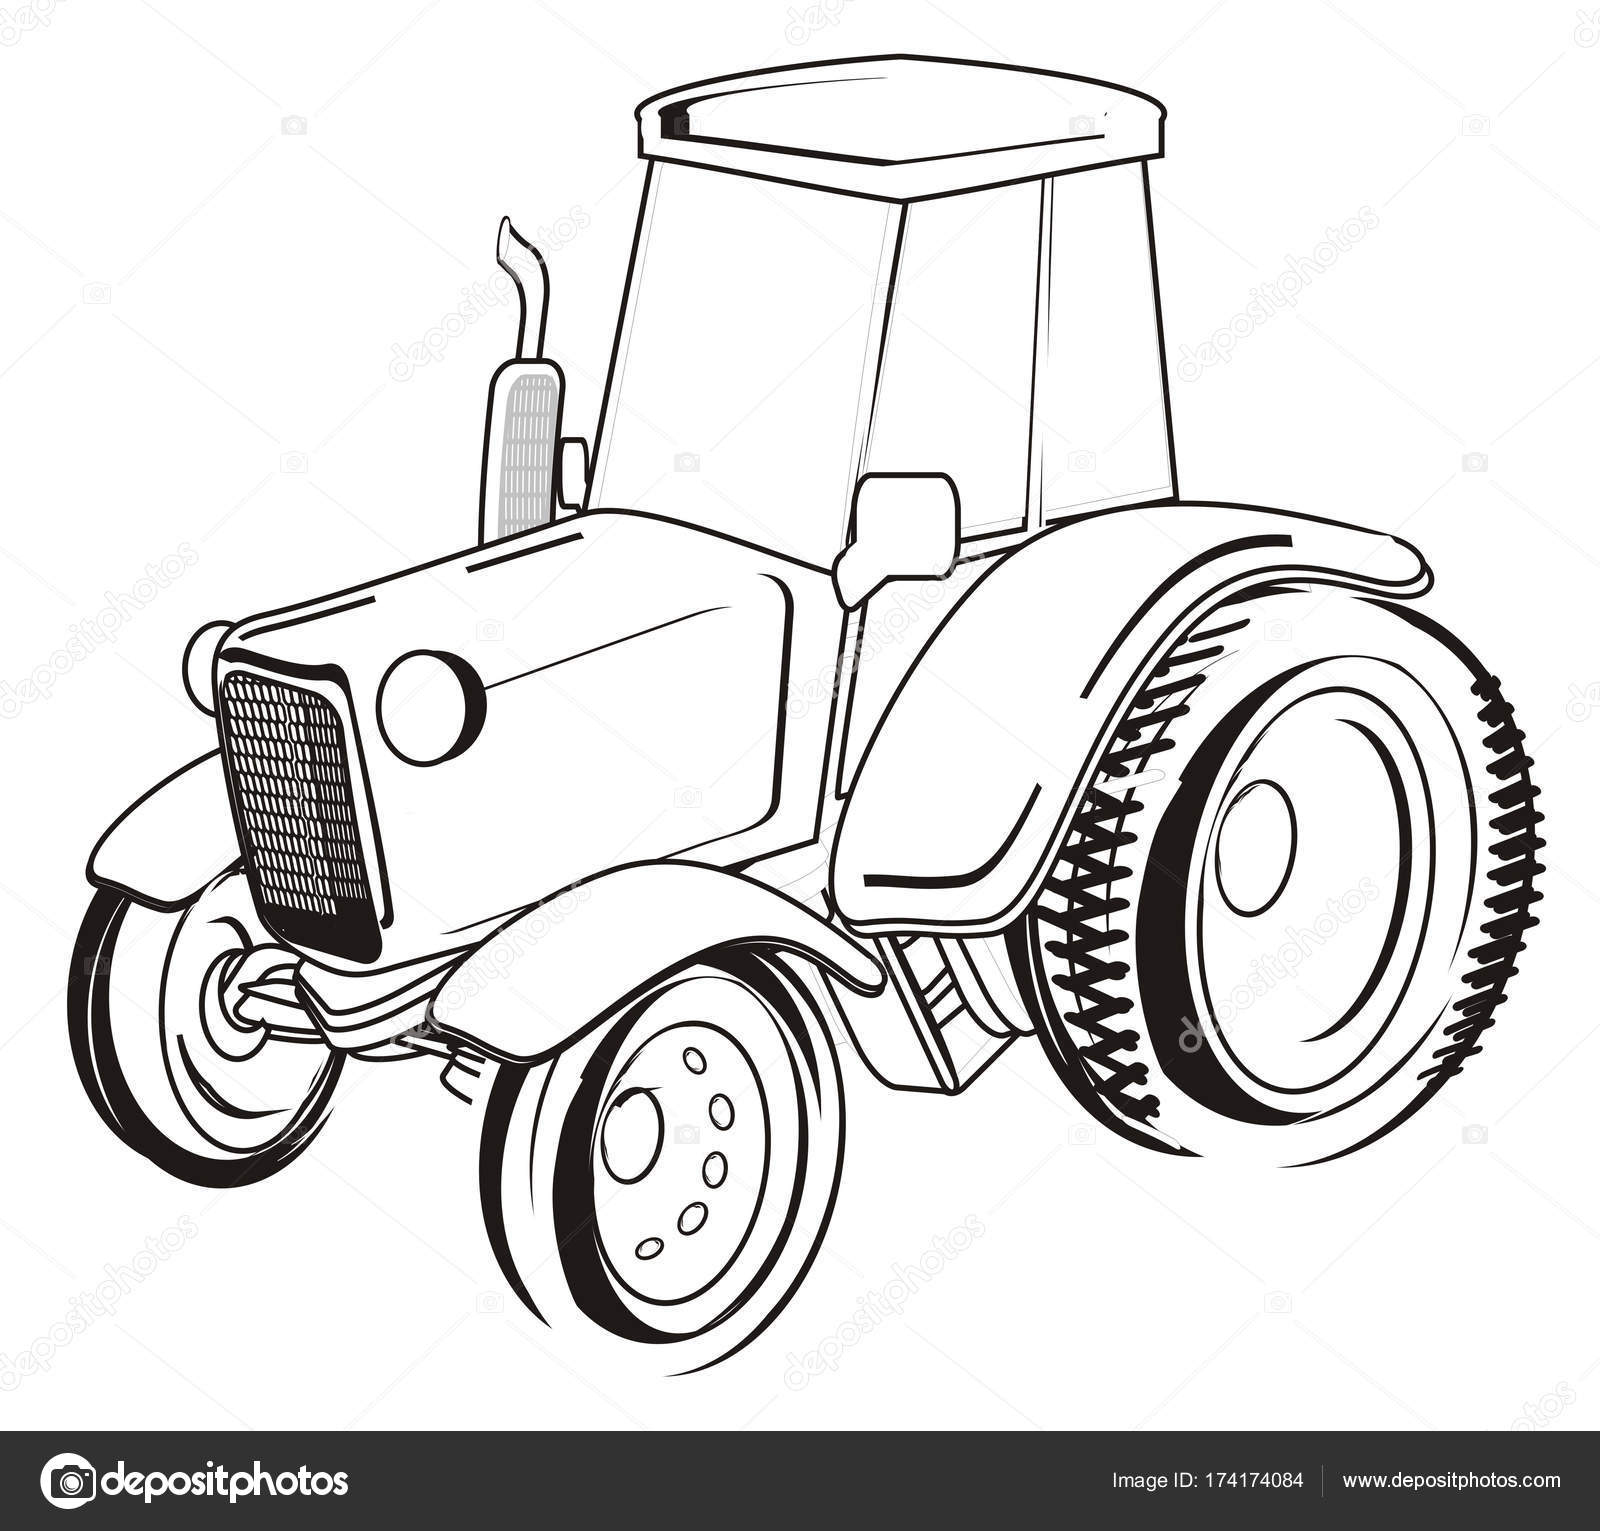 Https Id Depositphotos Com 174174084 Stock Photo One Farm Tractor Stand Html